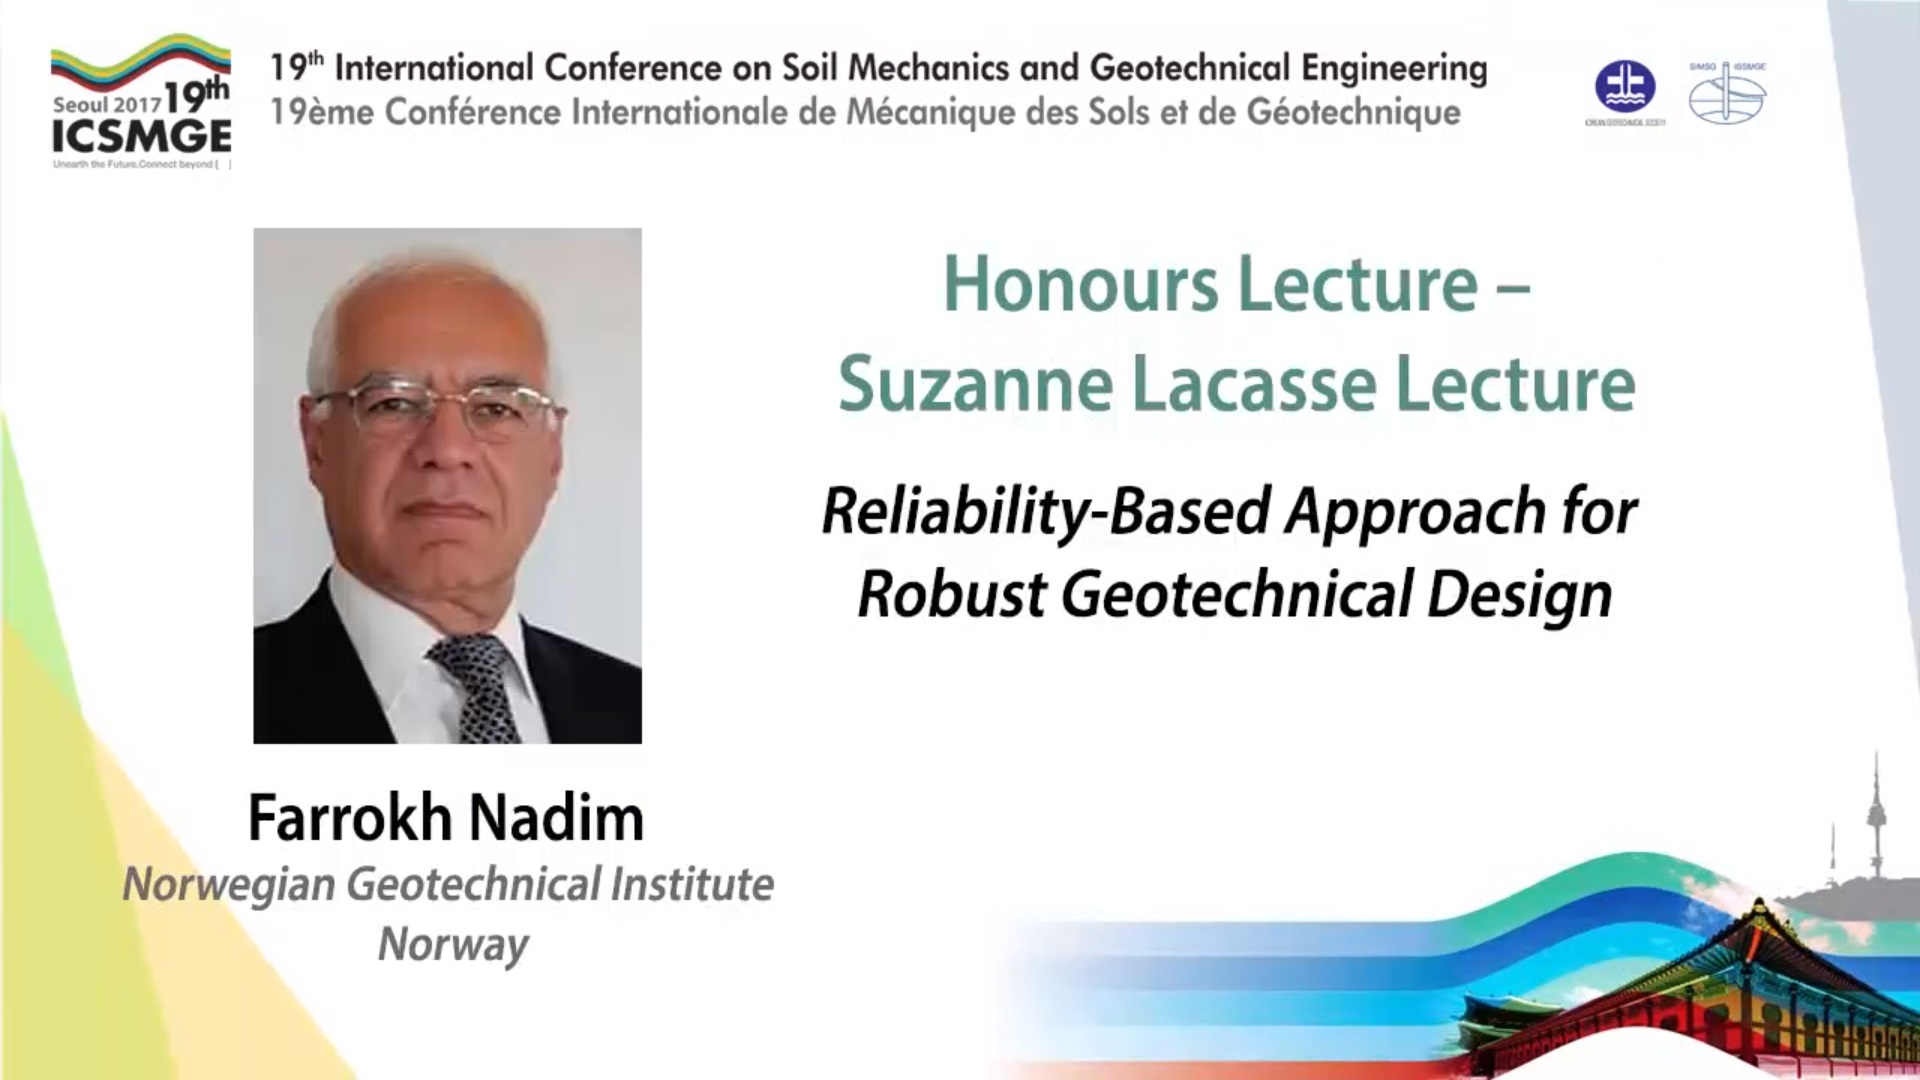 "Reliability-Based Approach for Robust Geotechnical Design (Suzanne Lacasse Lecture  - 19th ICSMGE) {""category"":""honour_lecture"",""subjects"":[""Risk & Reliability""],""number"":""ICSMGE19116"",""instructors"":[""Farrokh Nadim""]}"